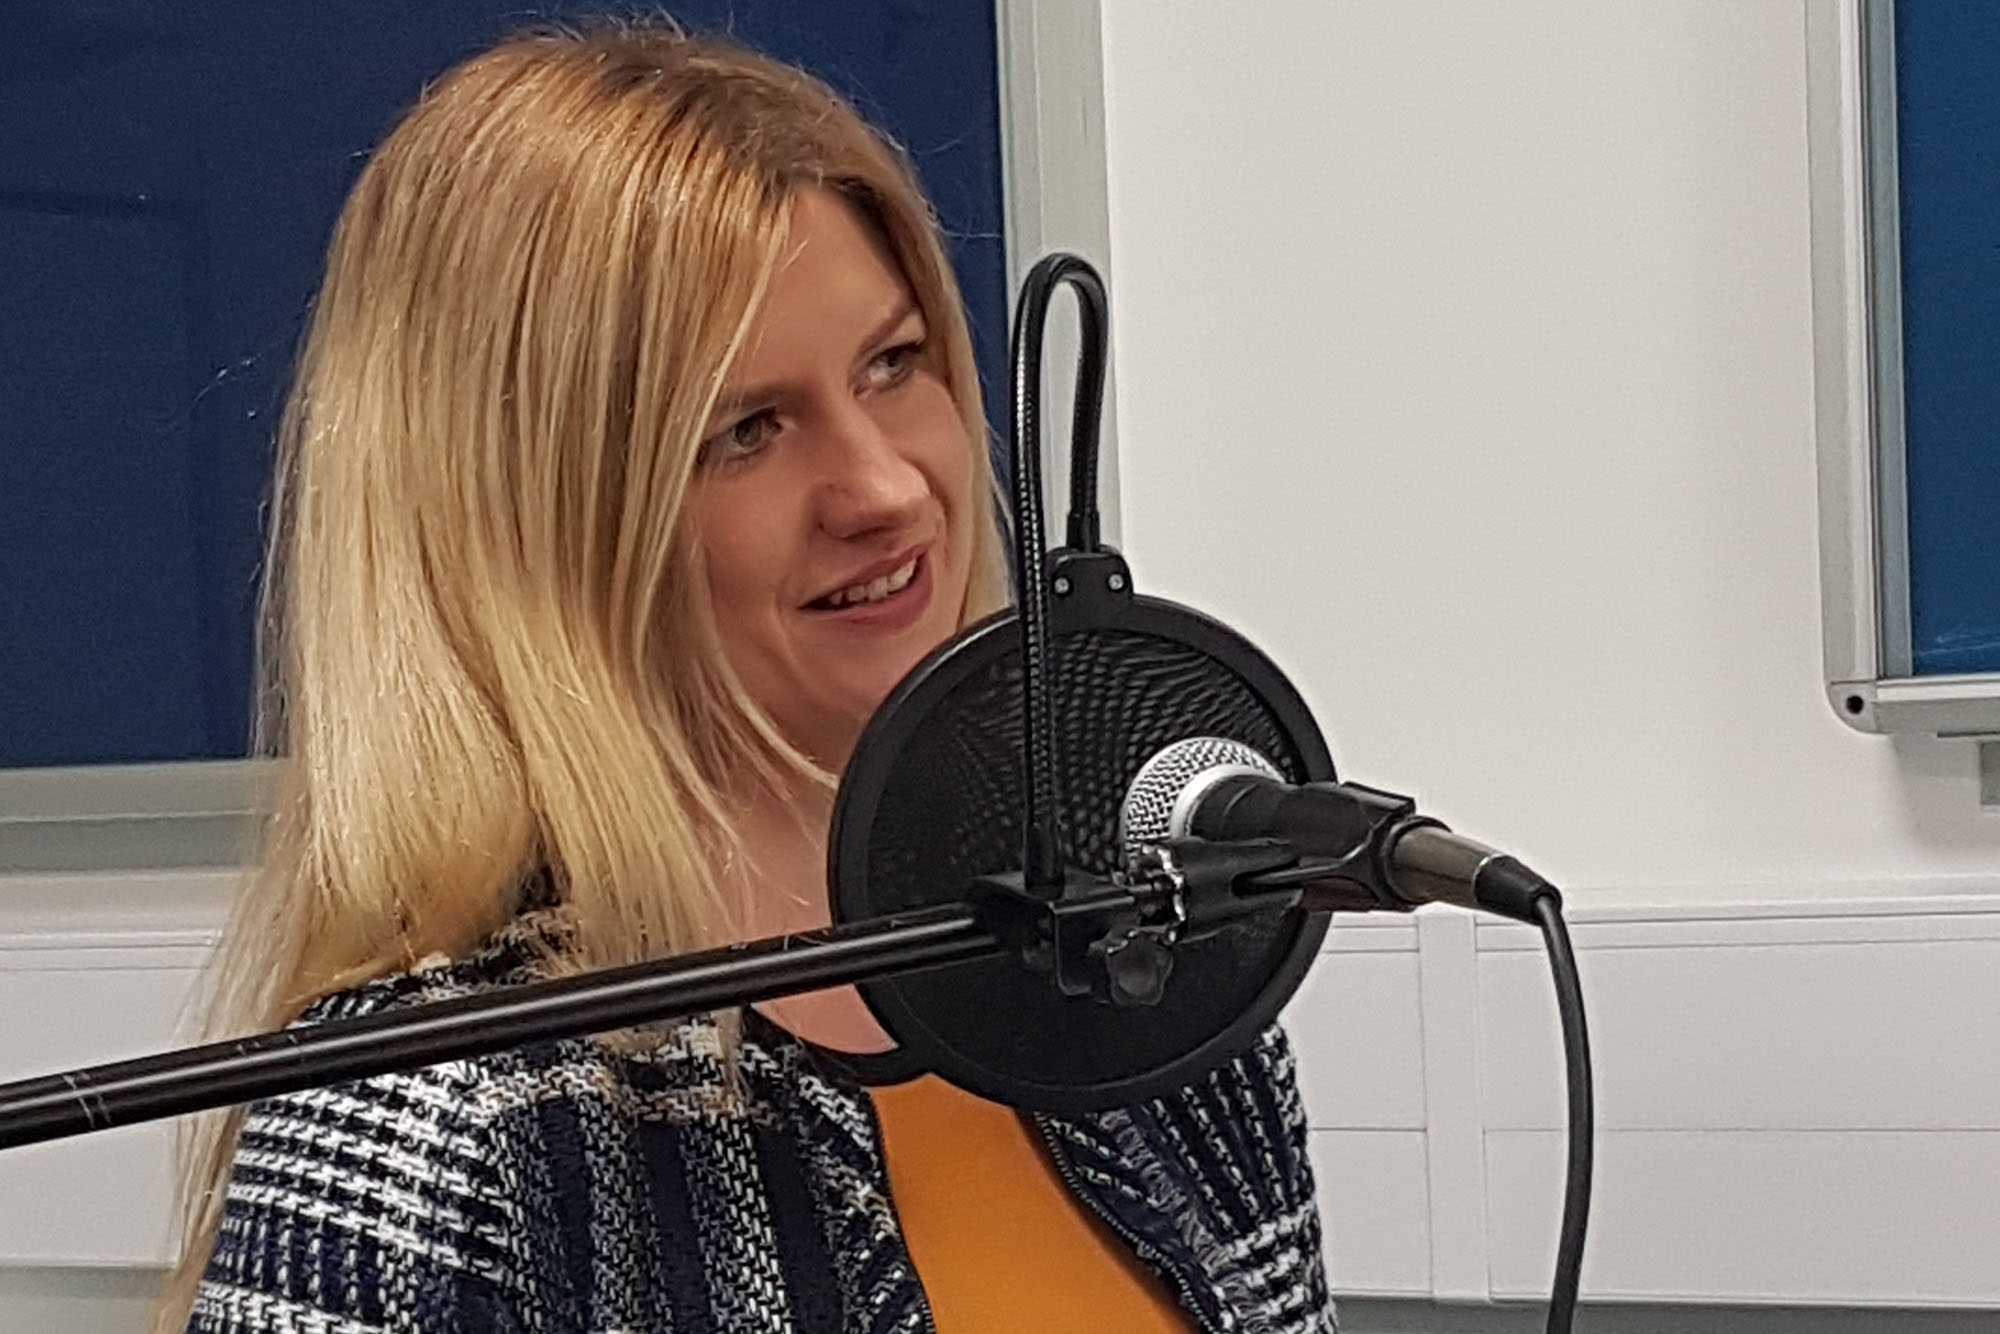 Nicole Yeomans at a microphone